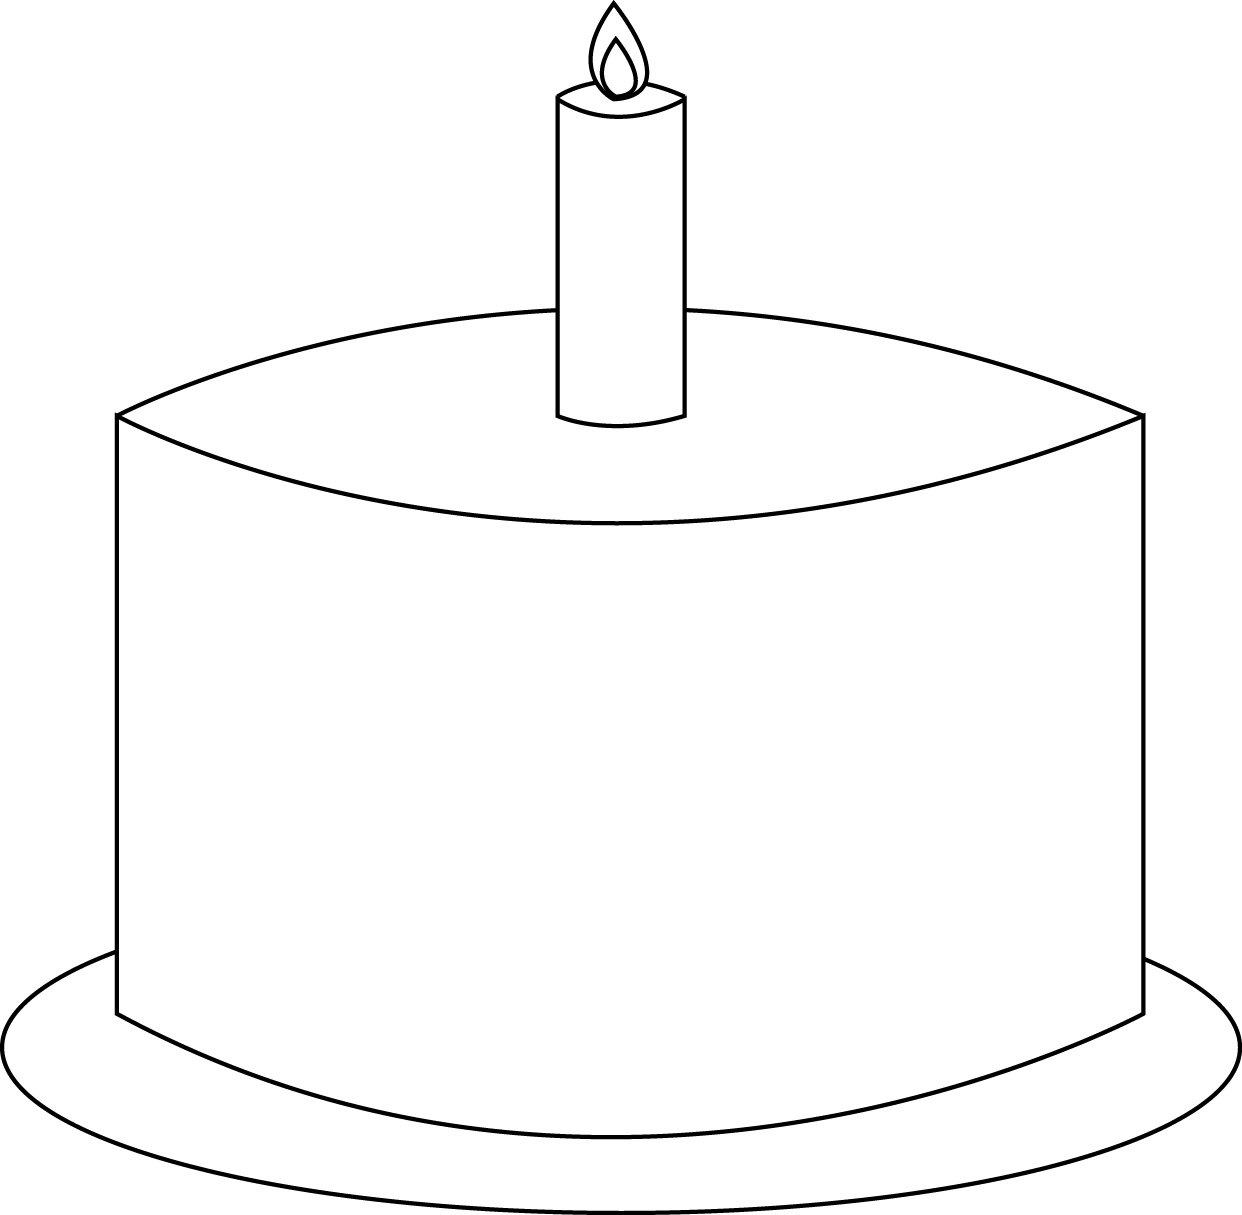 birthday cake cut out template ; birthday-cake-outline-template_90449